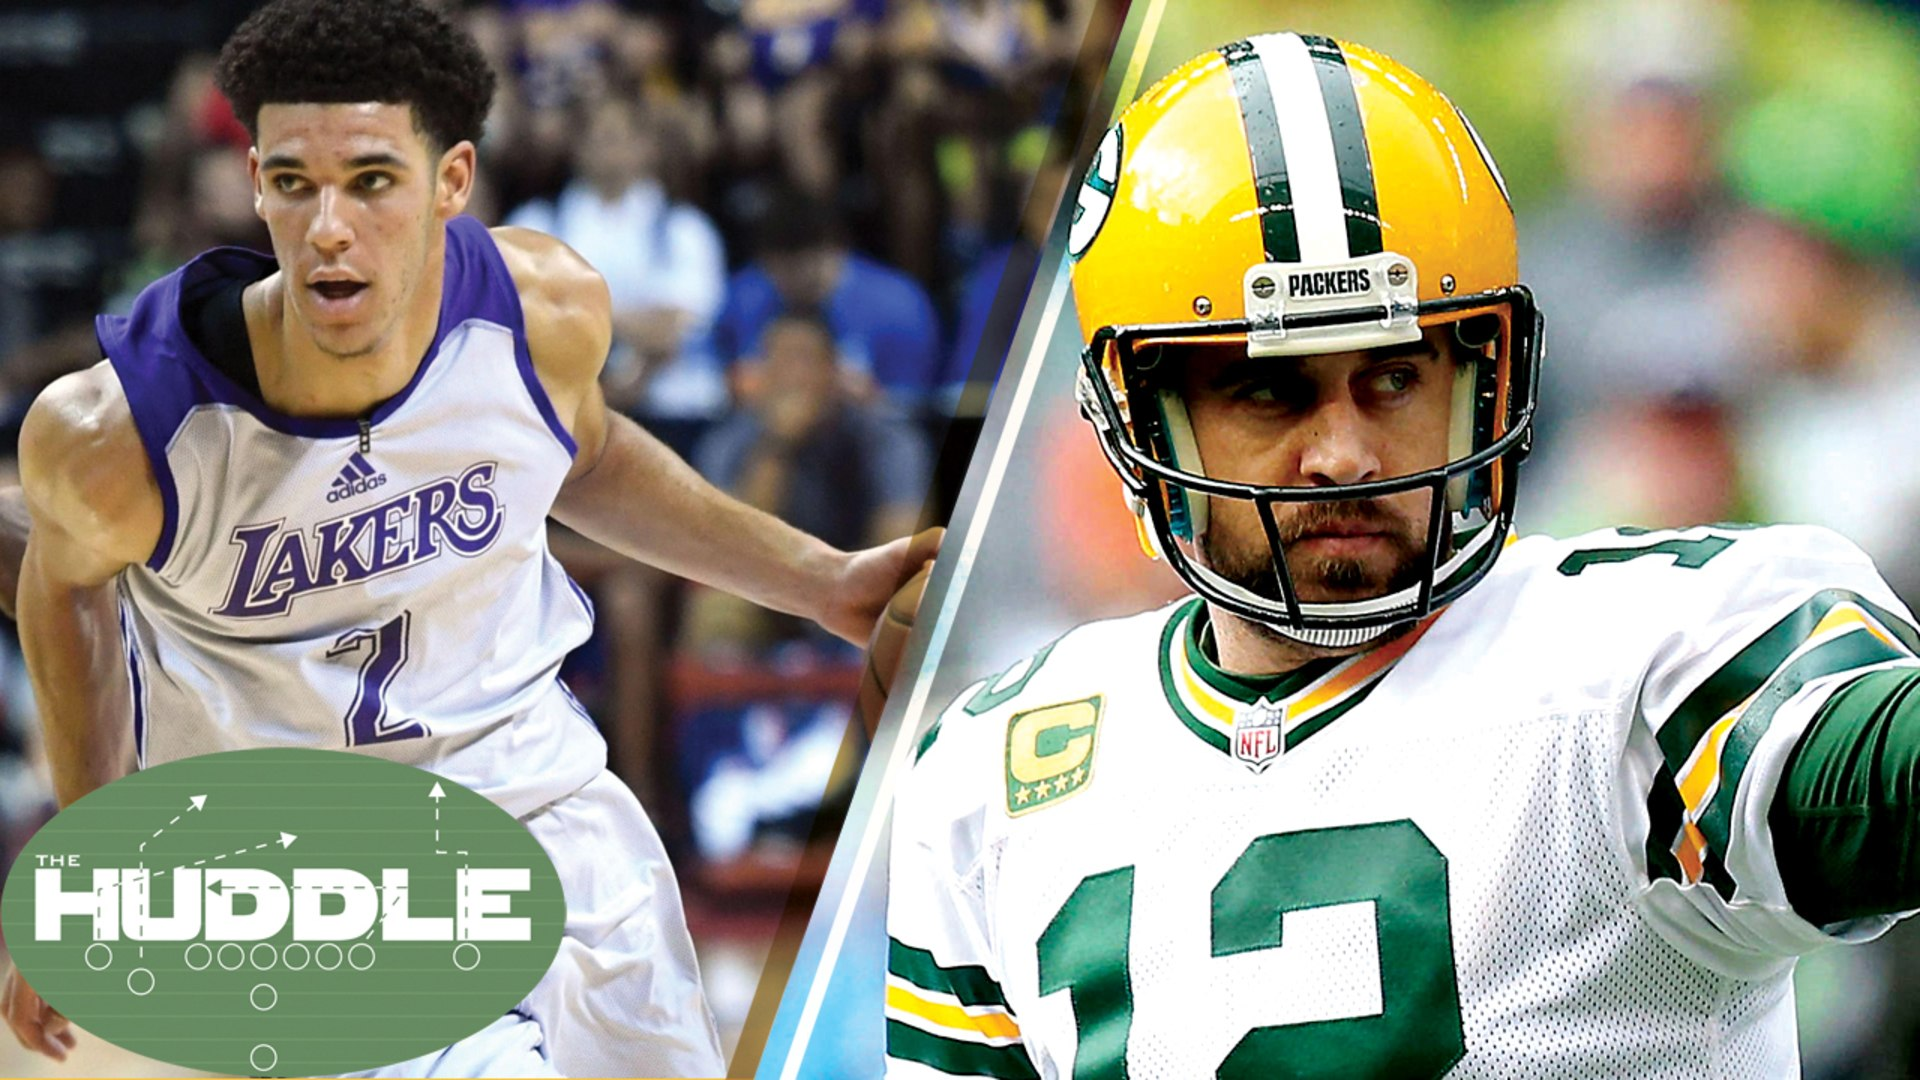 Lonzo Ball Drops a TRIPLE-DOUBLE on the Celtics, Should NFL Players Make More Than NBA? -The Huddle